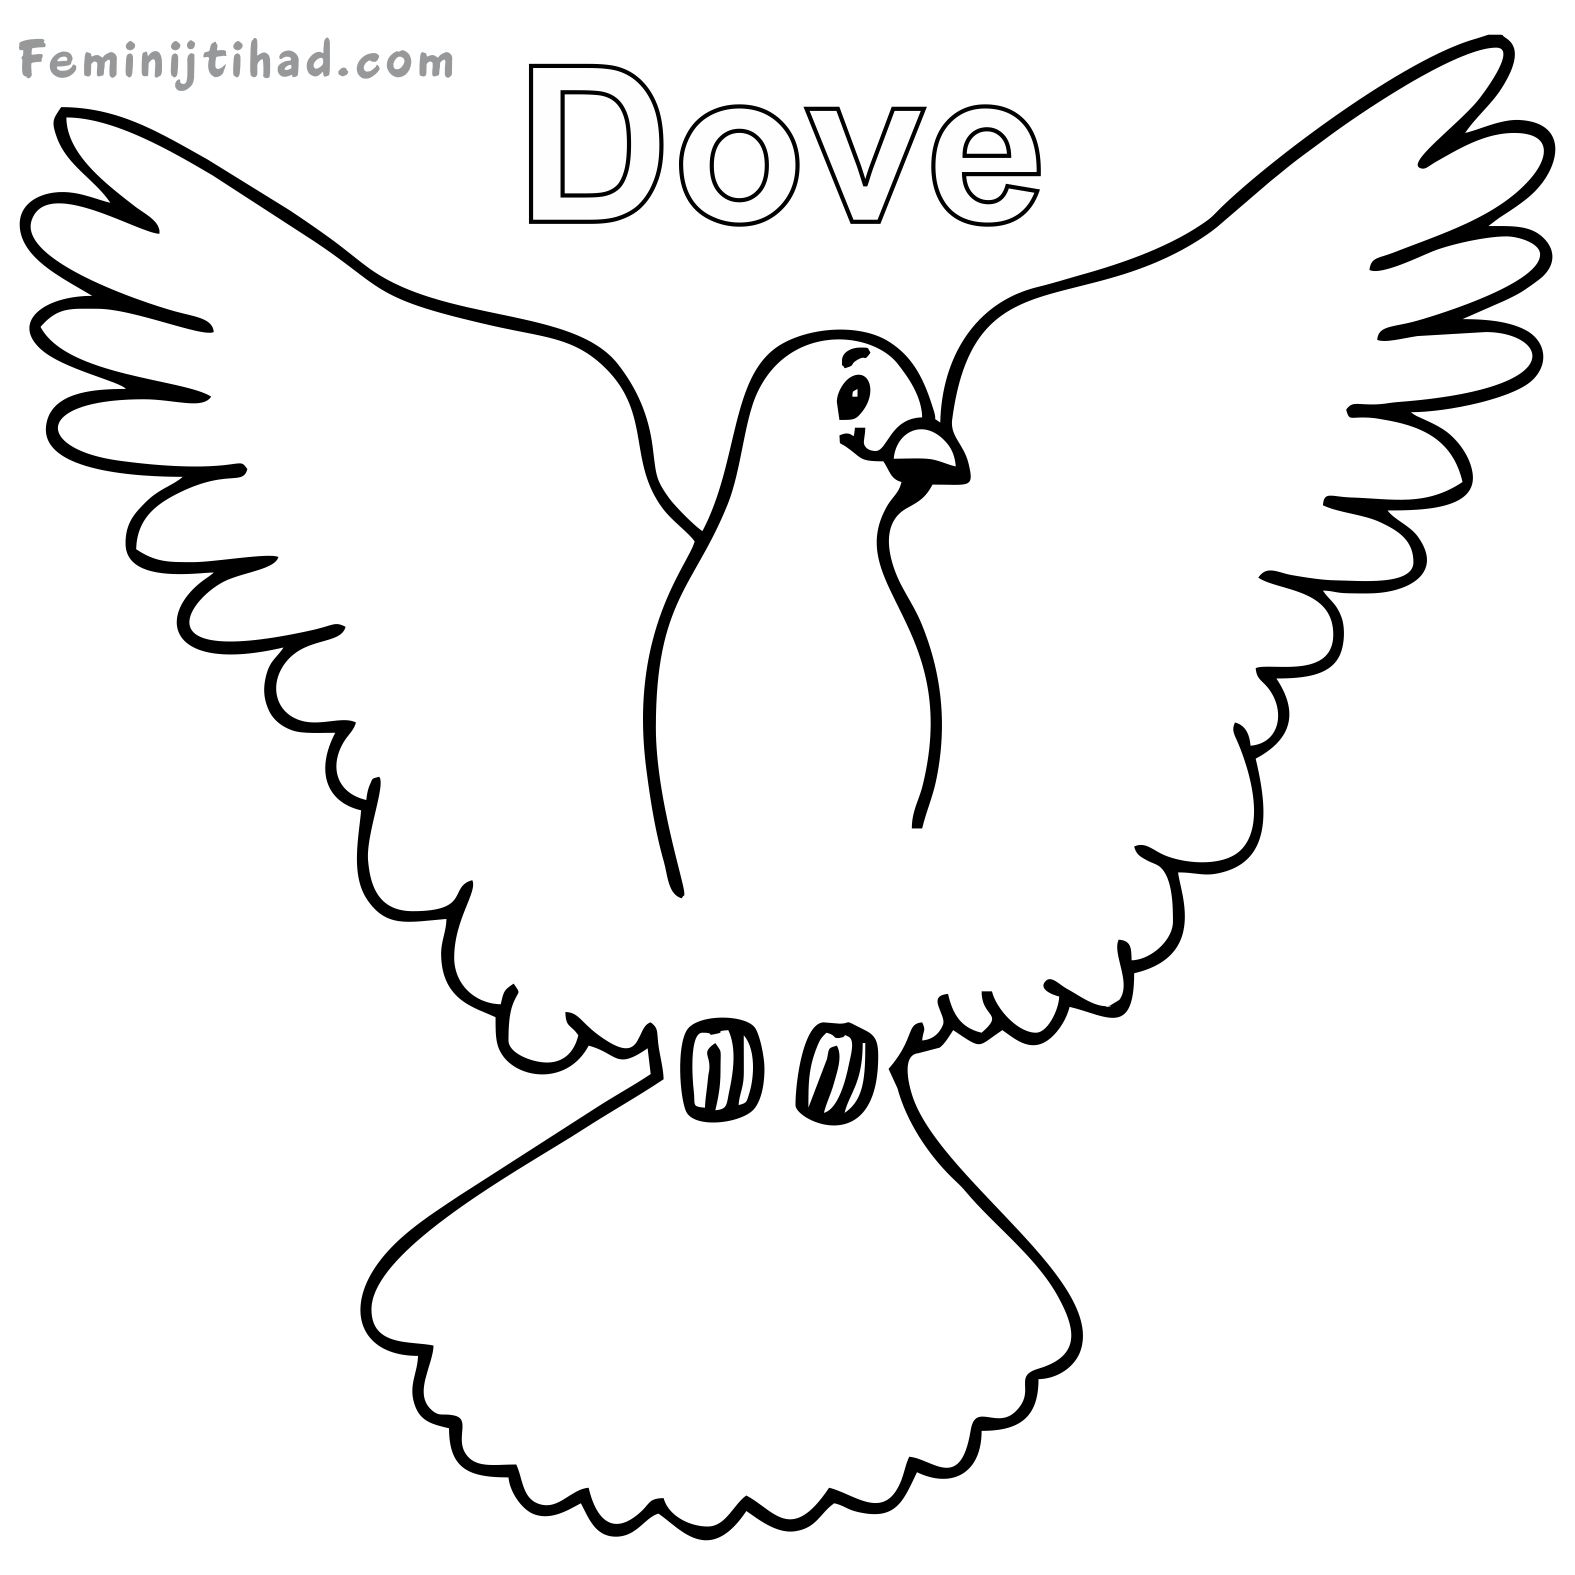 doves coloring pages white dove coloring download white dove coloring for free doves coloring pages